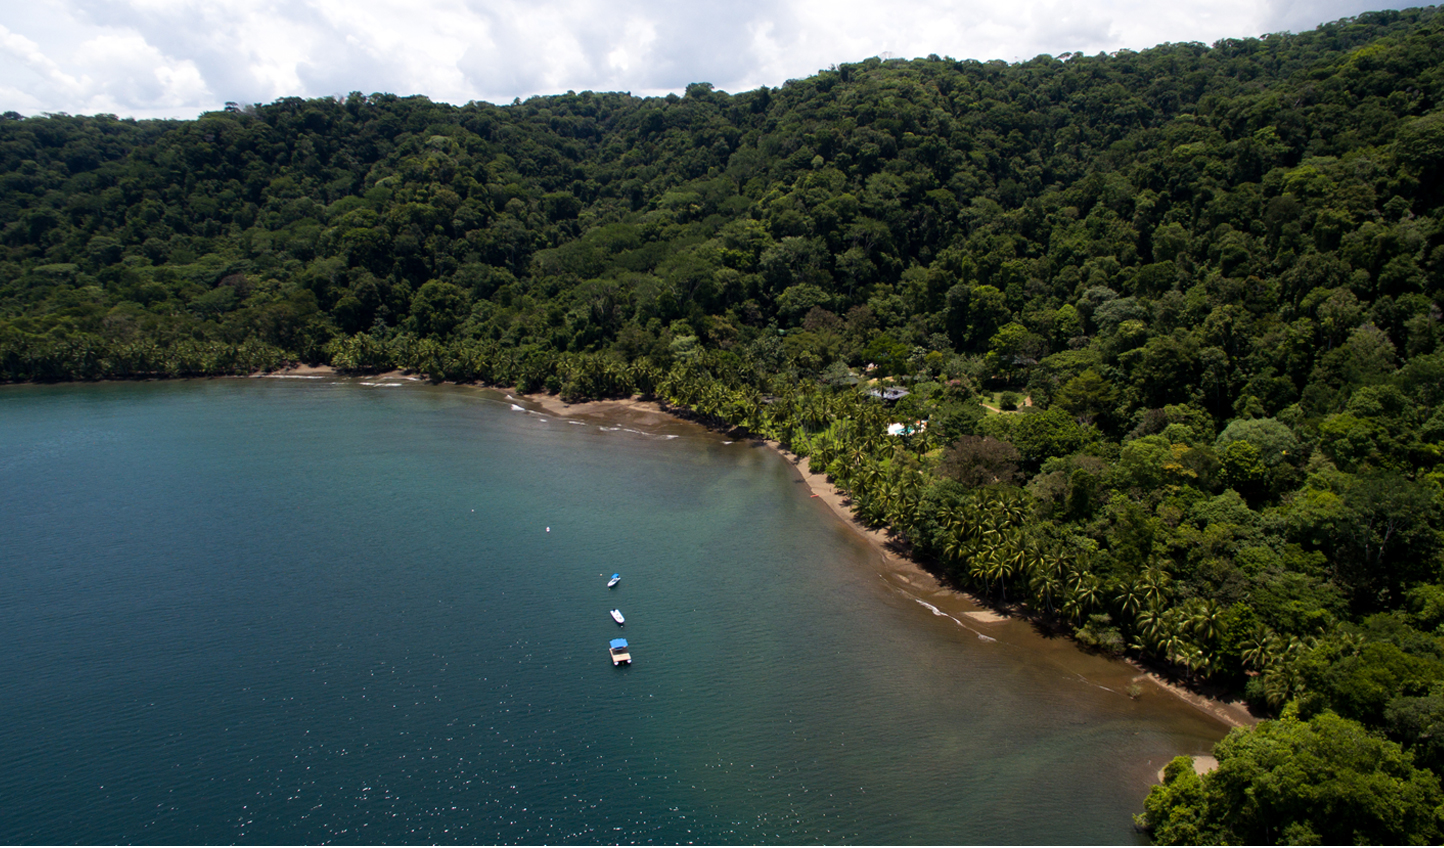 The lodge is completely secluded in a calm, southern bay